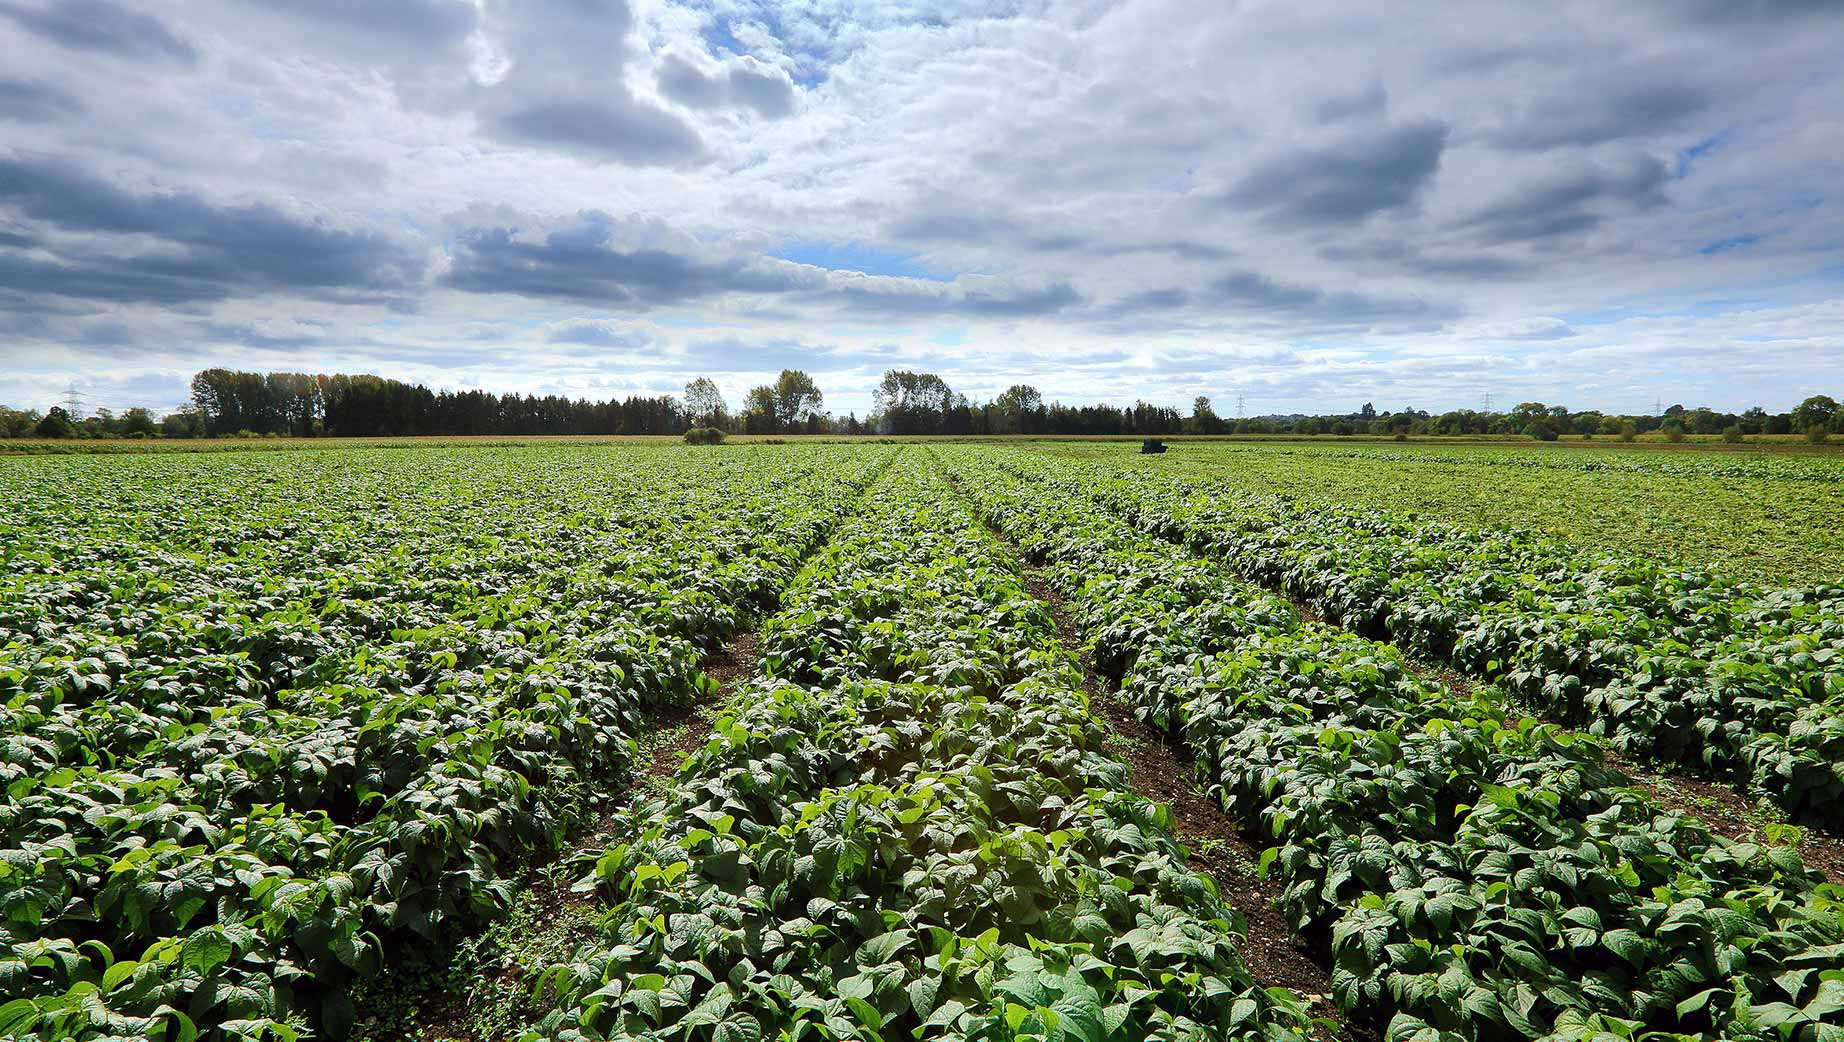 Photograph of green beans growing on the Barfoots UK farm